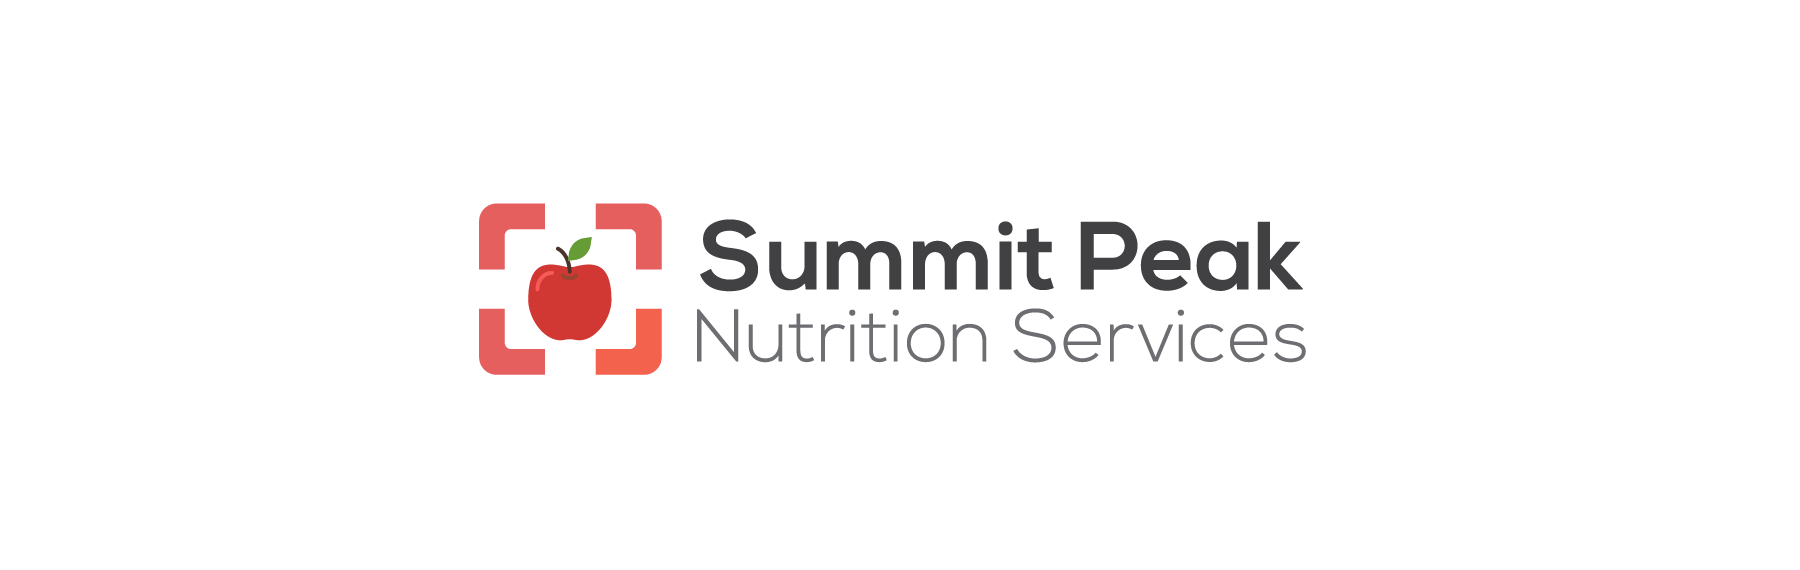 Summit Peak Nutrition Services Stephanie Thomson, RDN on Measuring Health | Dish With A Dietitian